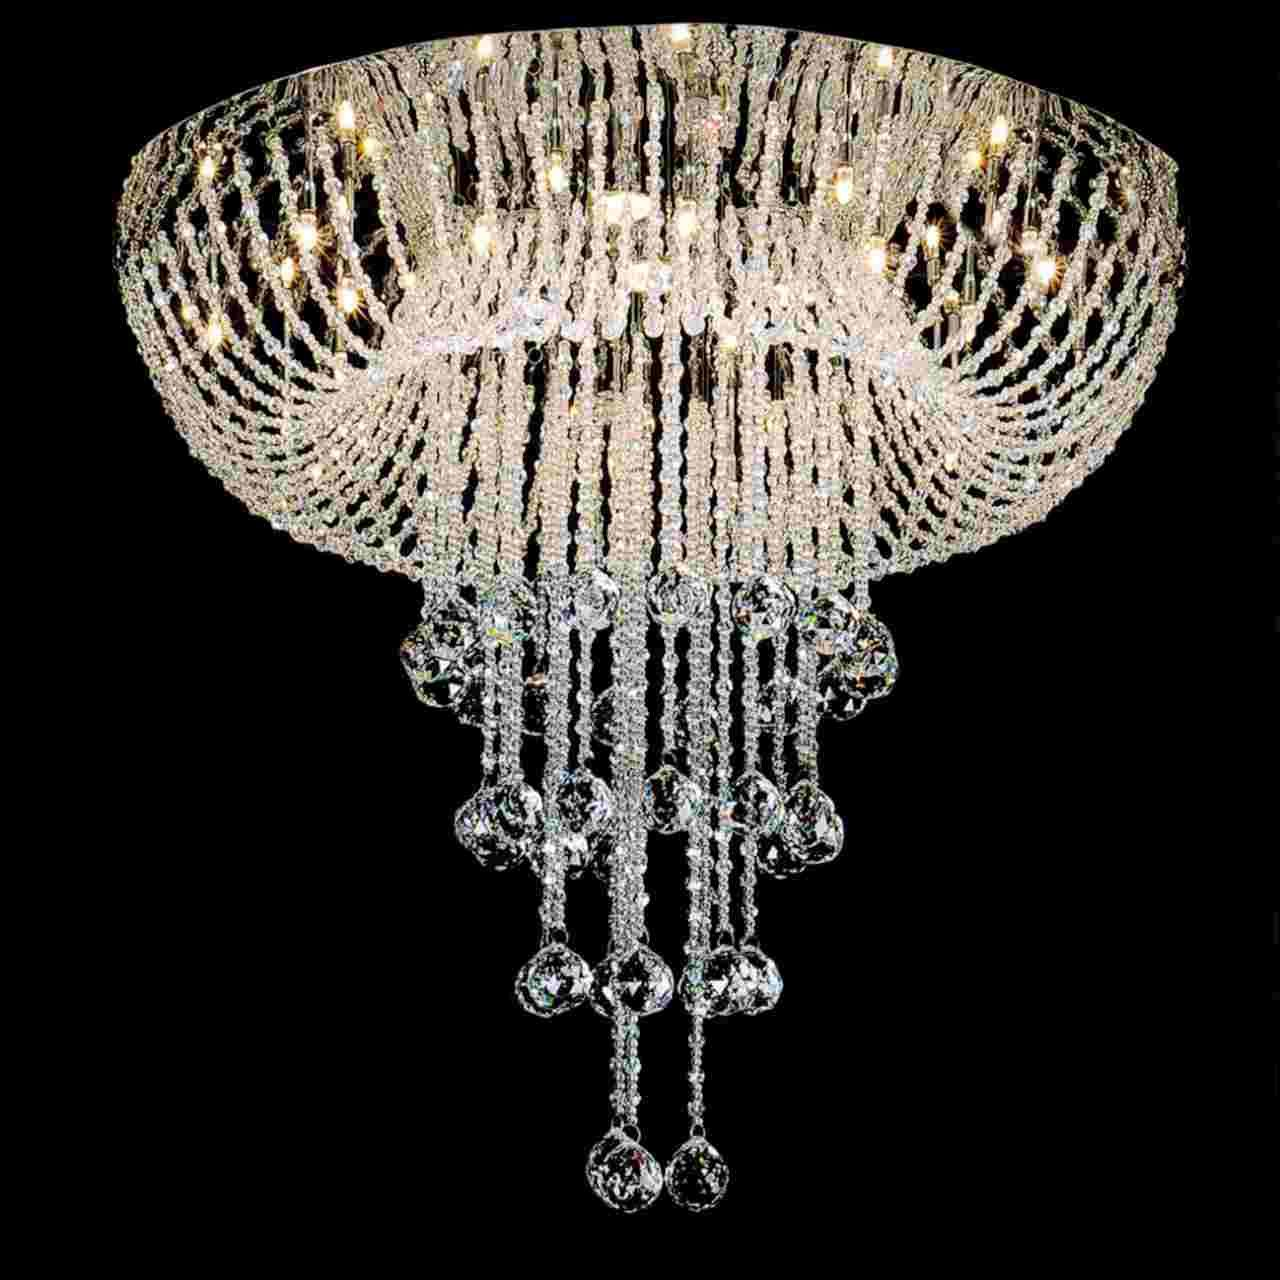 Show details for 24 chateaux modern foyer crystal chandelier mirror show details for 24 chateaux modern foyer crystal chandelier mirror stainless steel base 16 arubaitofo Gallery